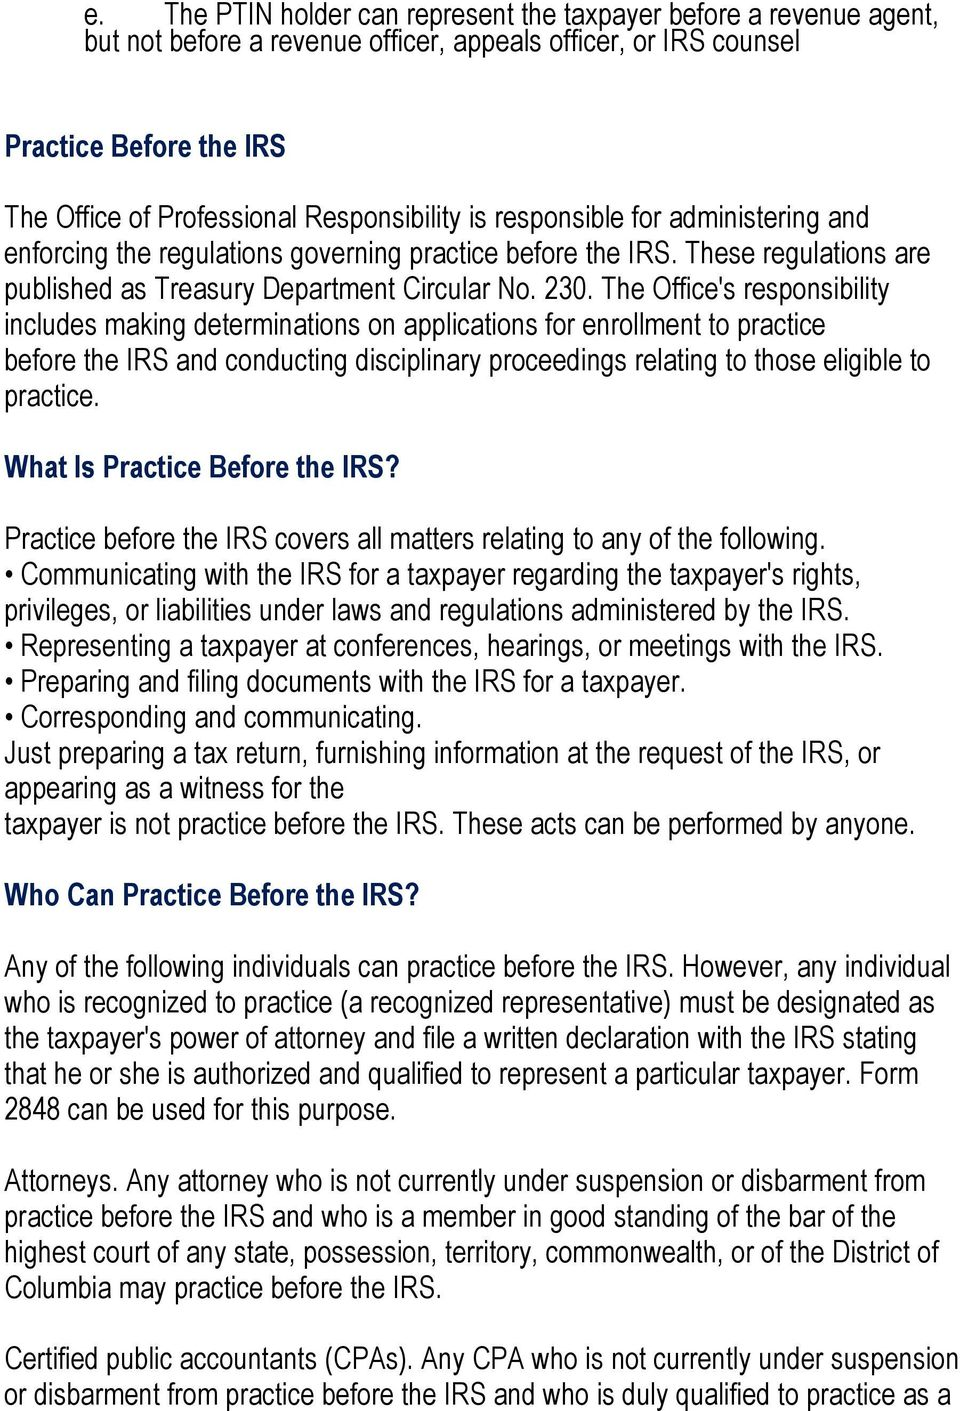 The Office's responsibility includes making determinations on applications for enrollment to practice before the IRS and conducting disciplinary proceedings relating to those eligible to practice.